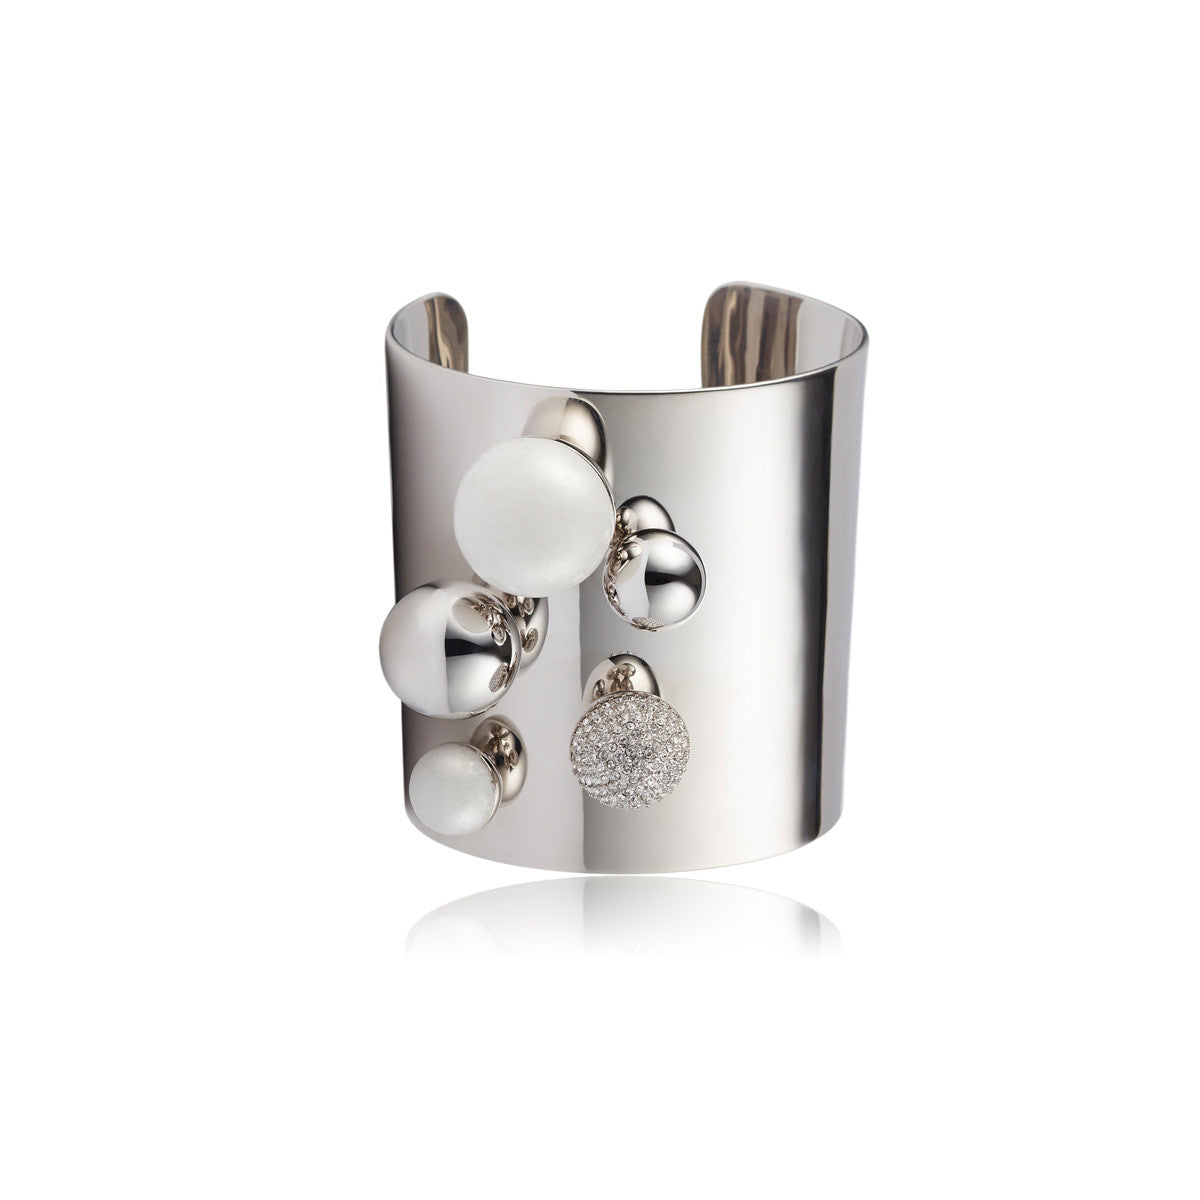 Solid brass, rhodium plated Stellatus cuff bangle is topped with a cluster of spheres in Swarovski® crystal pavè detailing and natural white agate – front